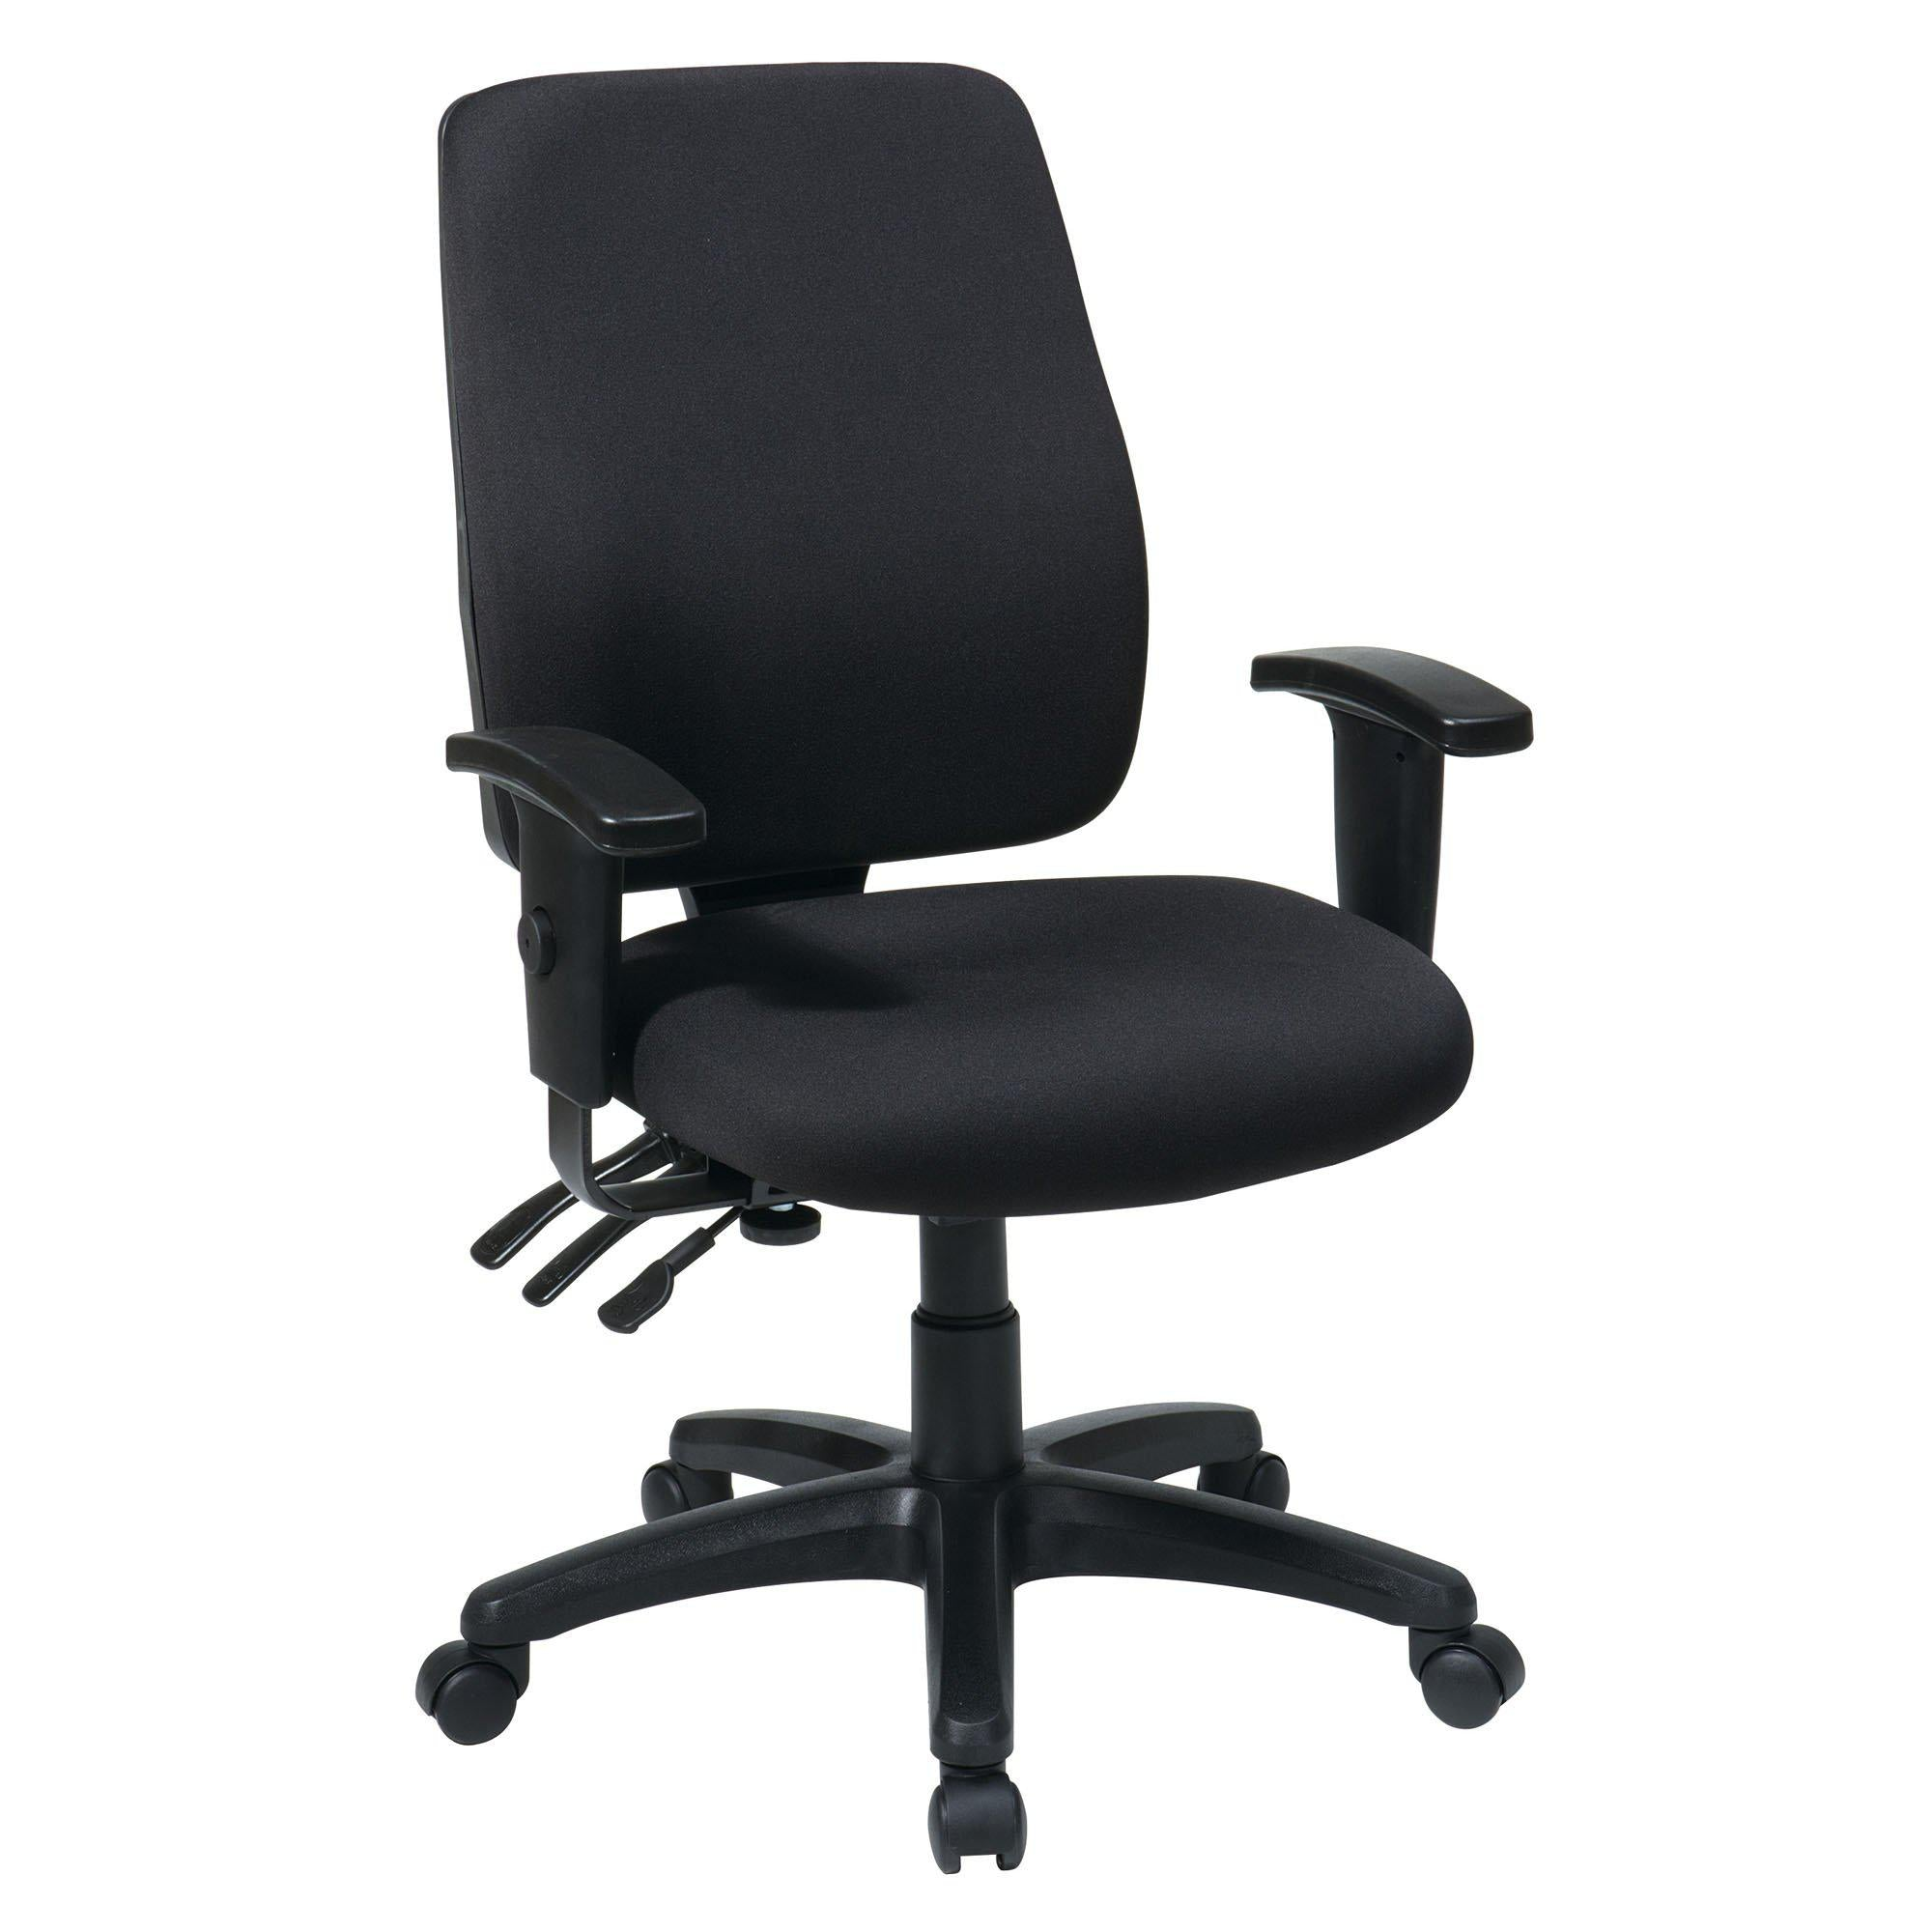 Antimicrobial High Back Ergonomic Chair